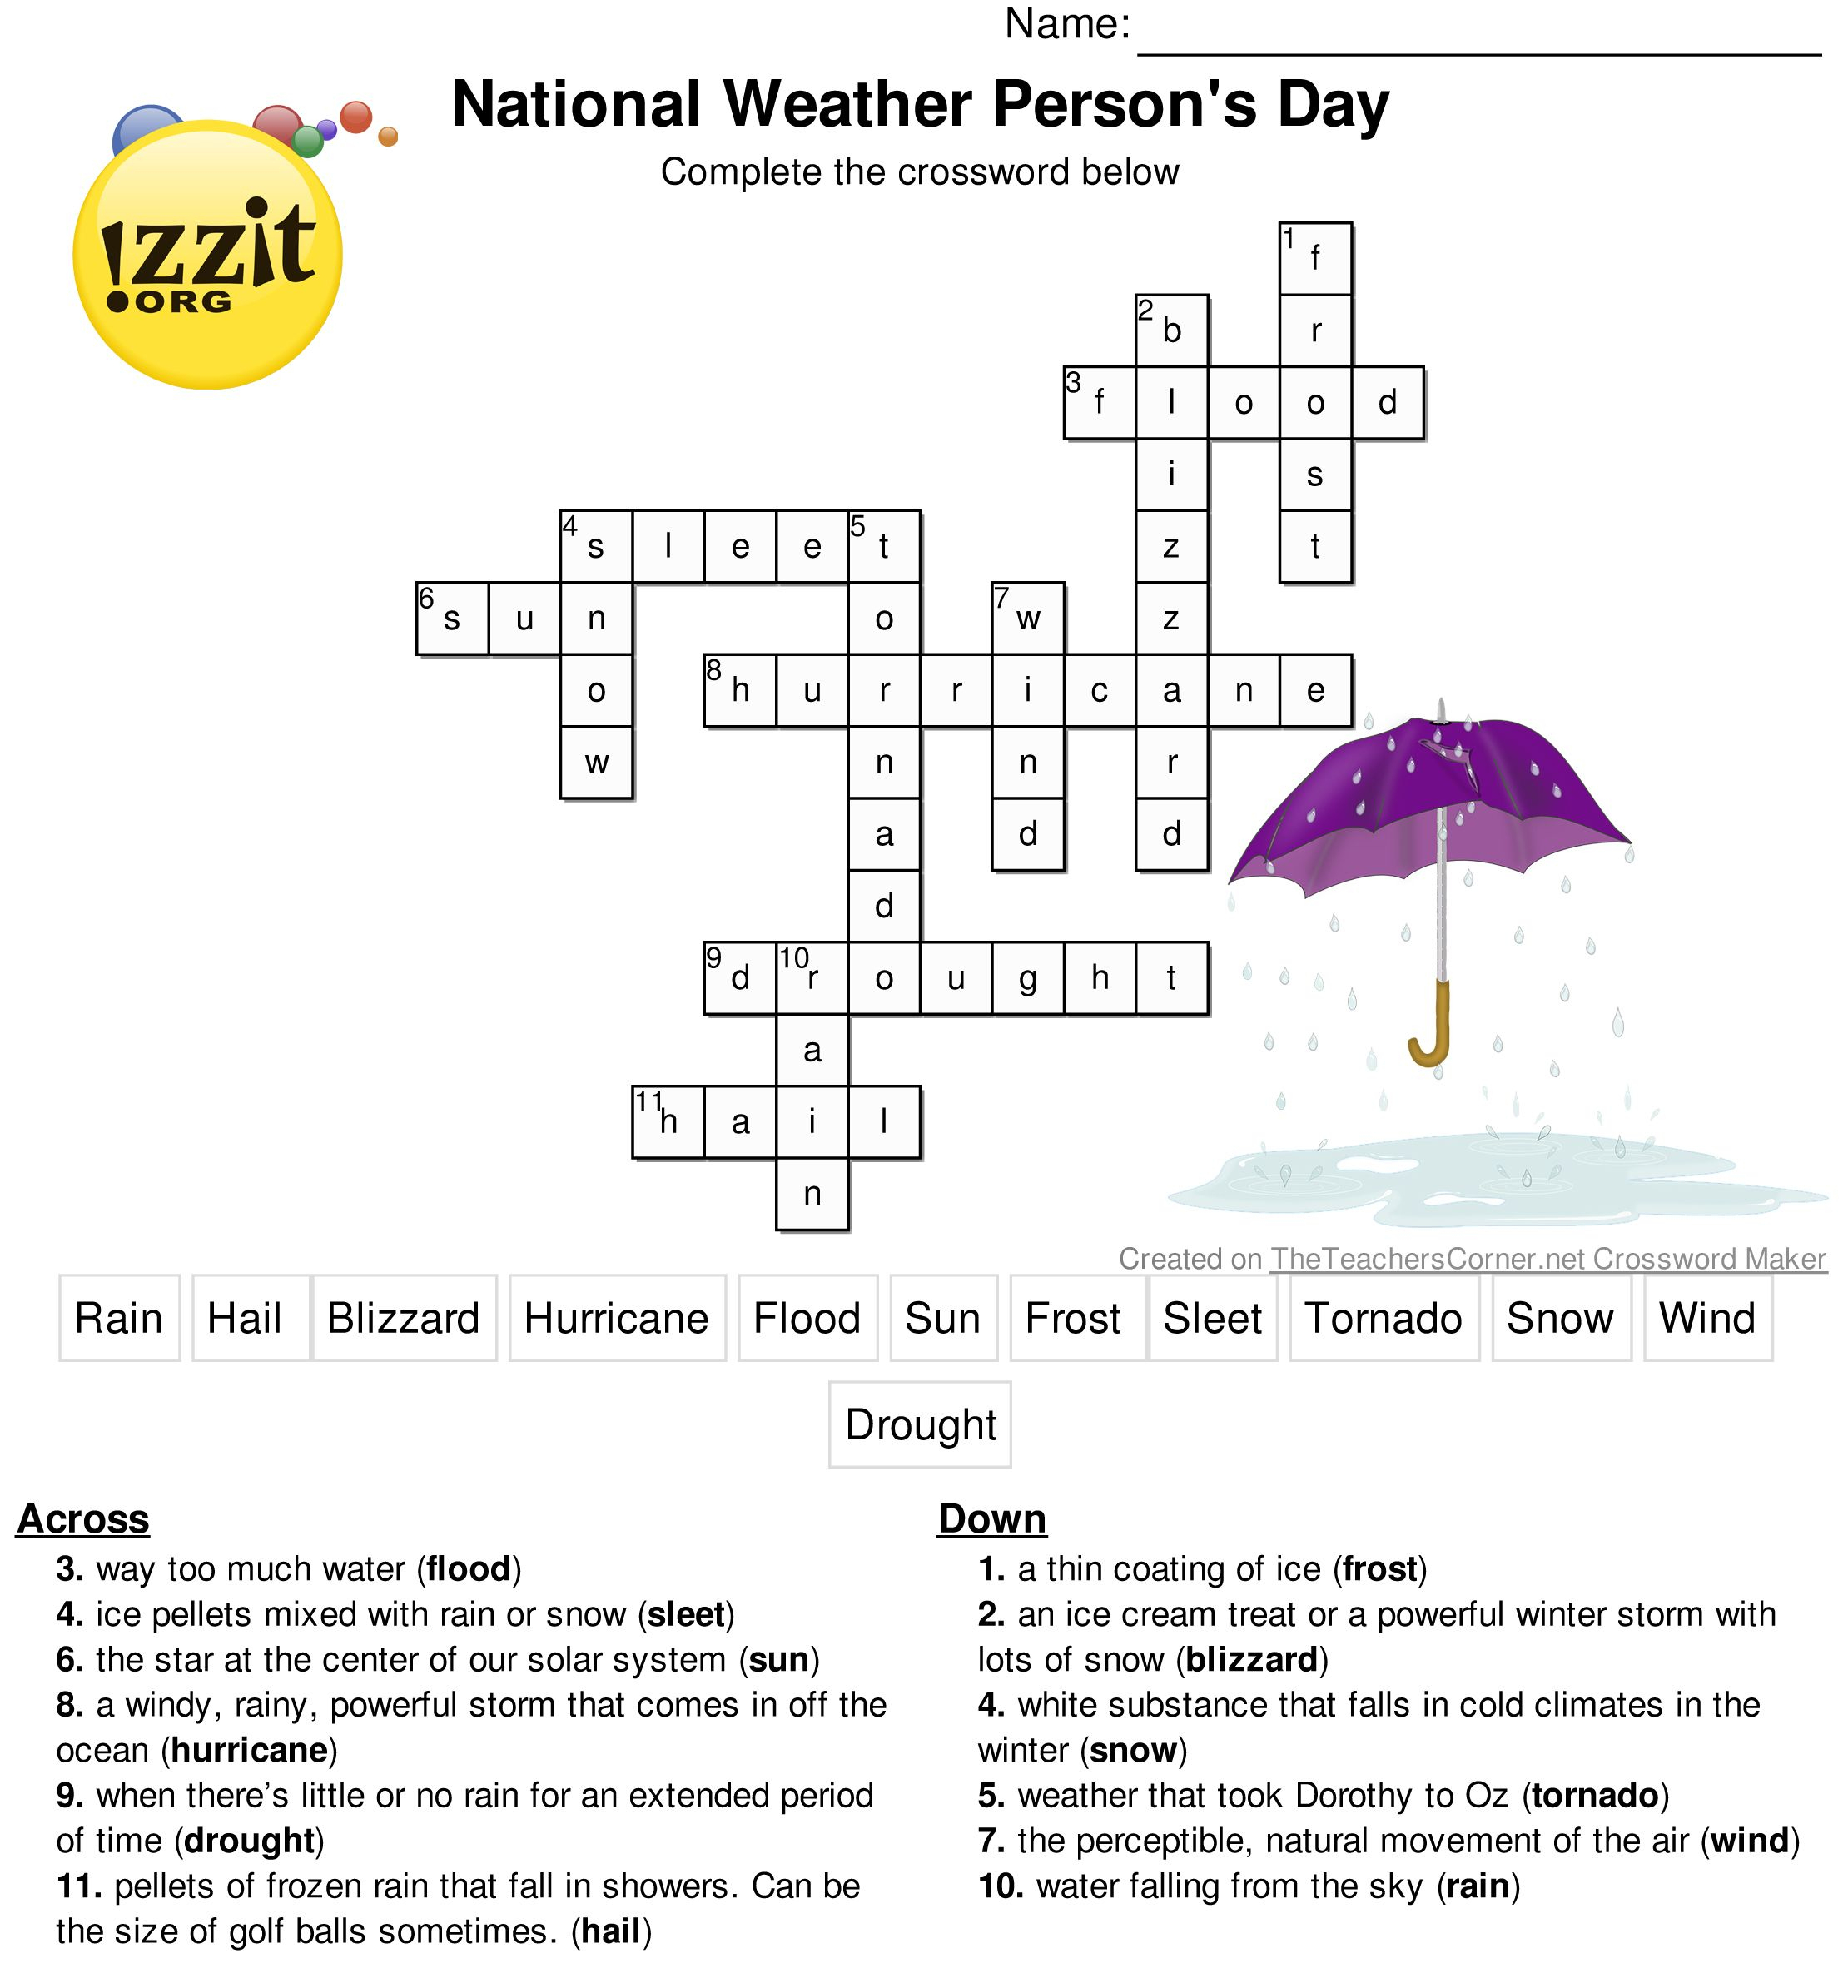 Here Is The Answer Key For The Printable Crossword Puzzle For - Groundhog Day Crossword Puzzles Printable